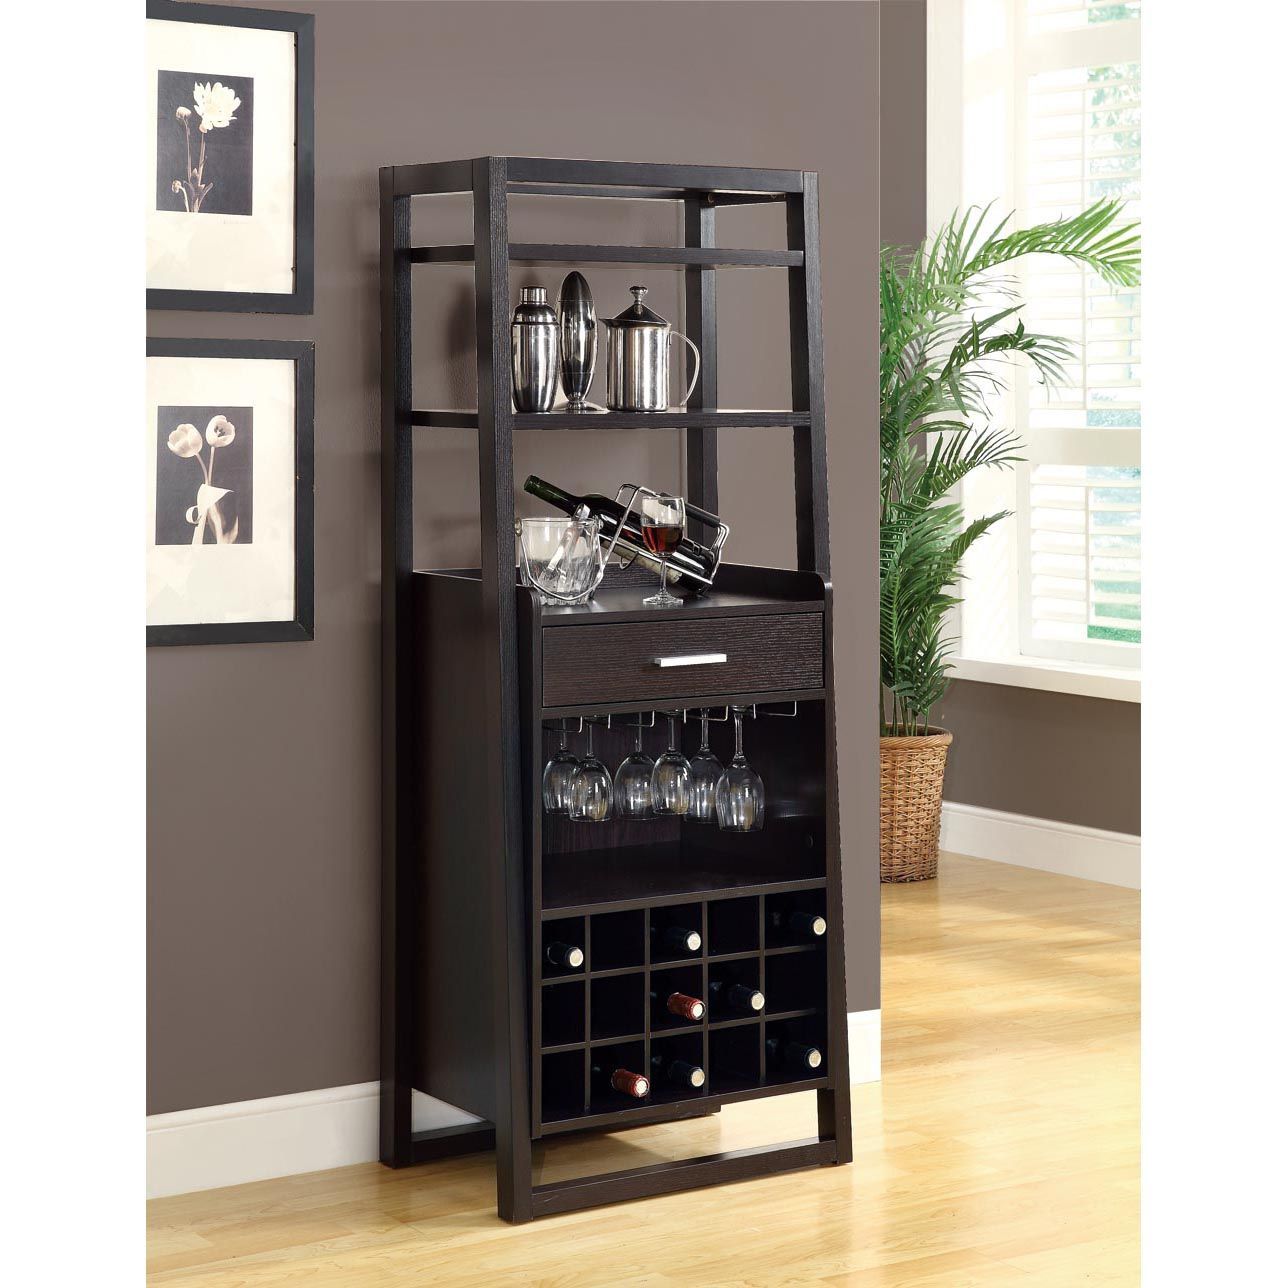 Dinner guests will love this home bar unit that has everything you ...